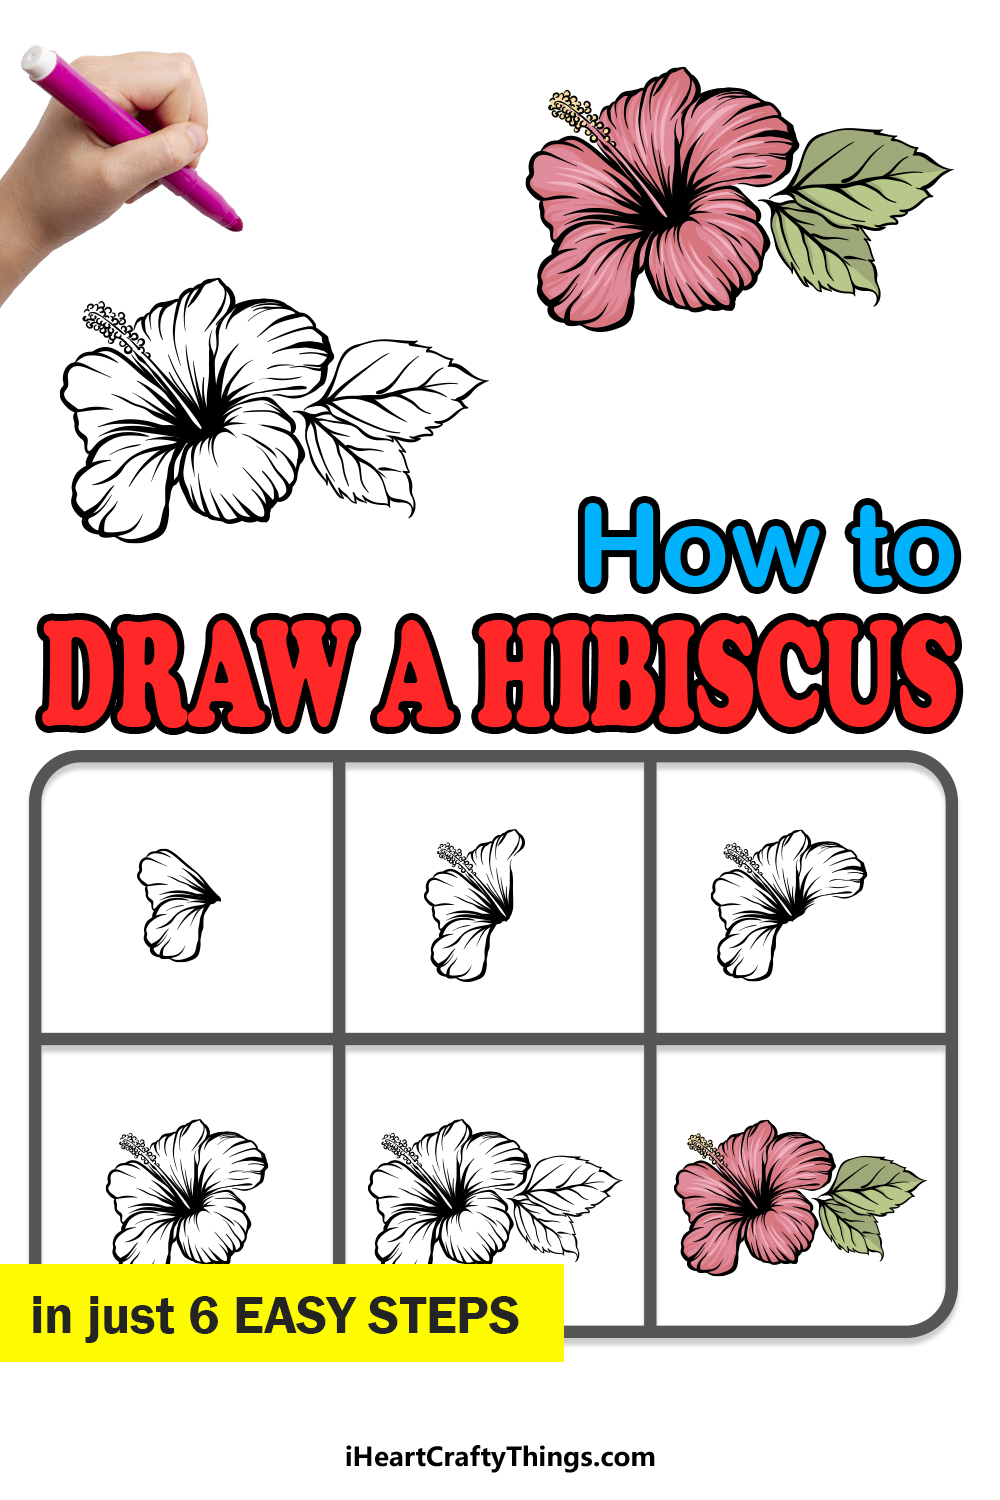 how to draw a hibiscus in 6 easy steps